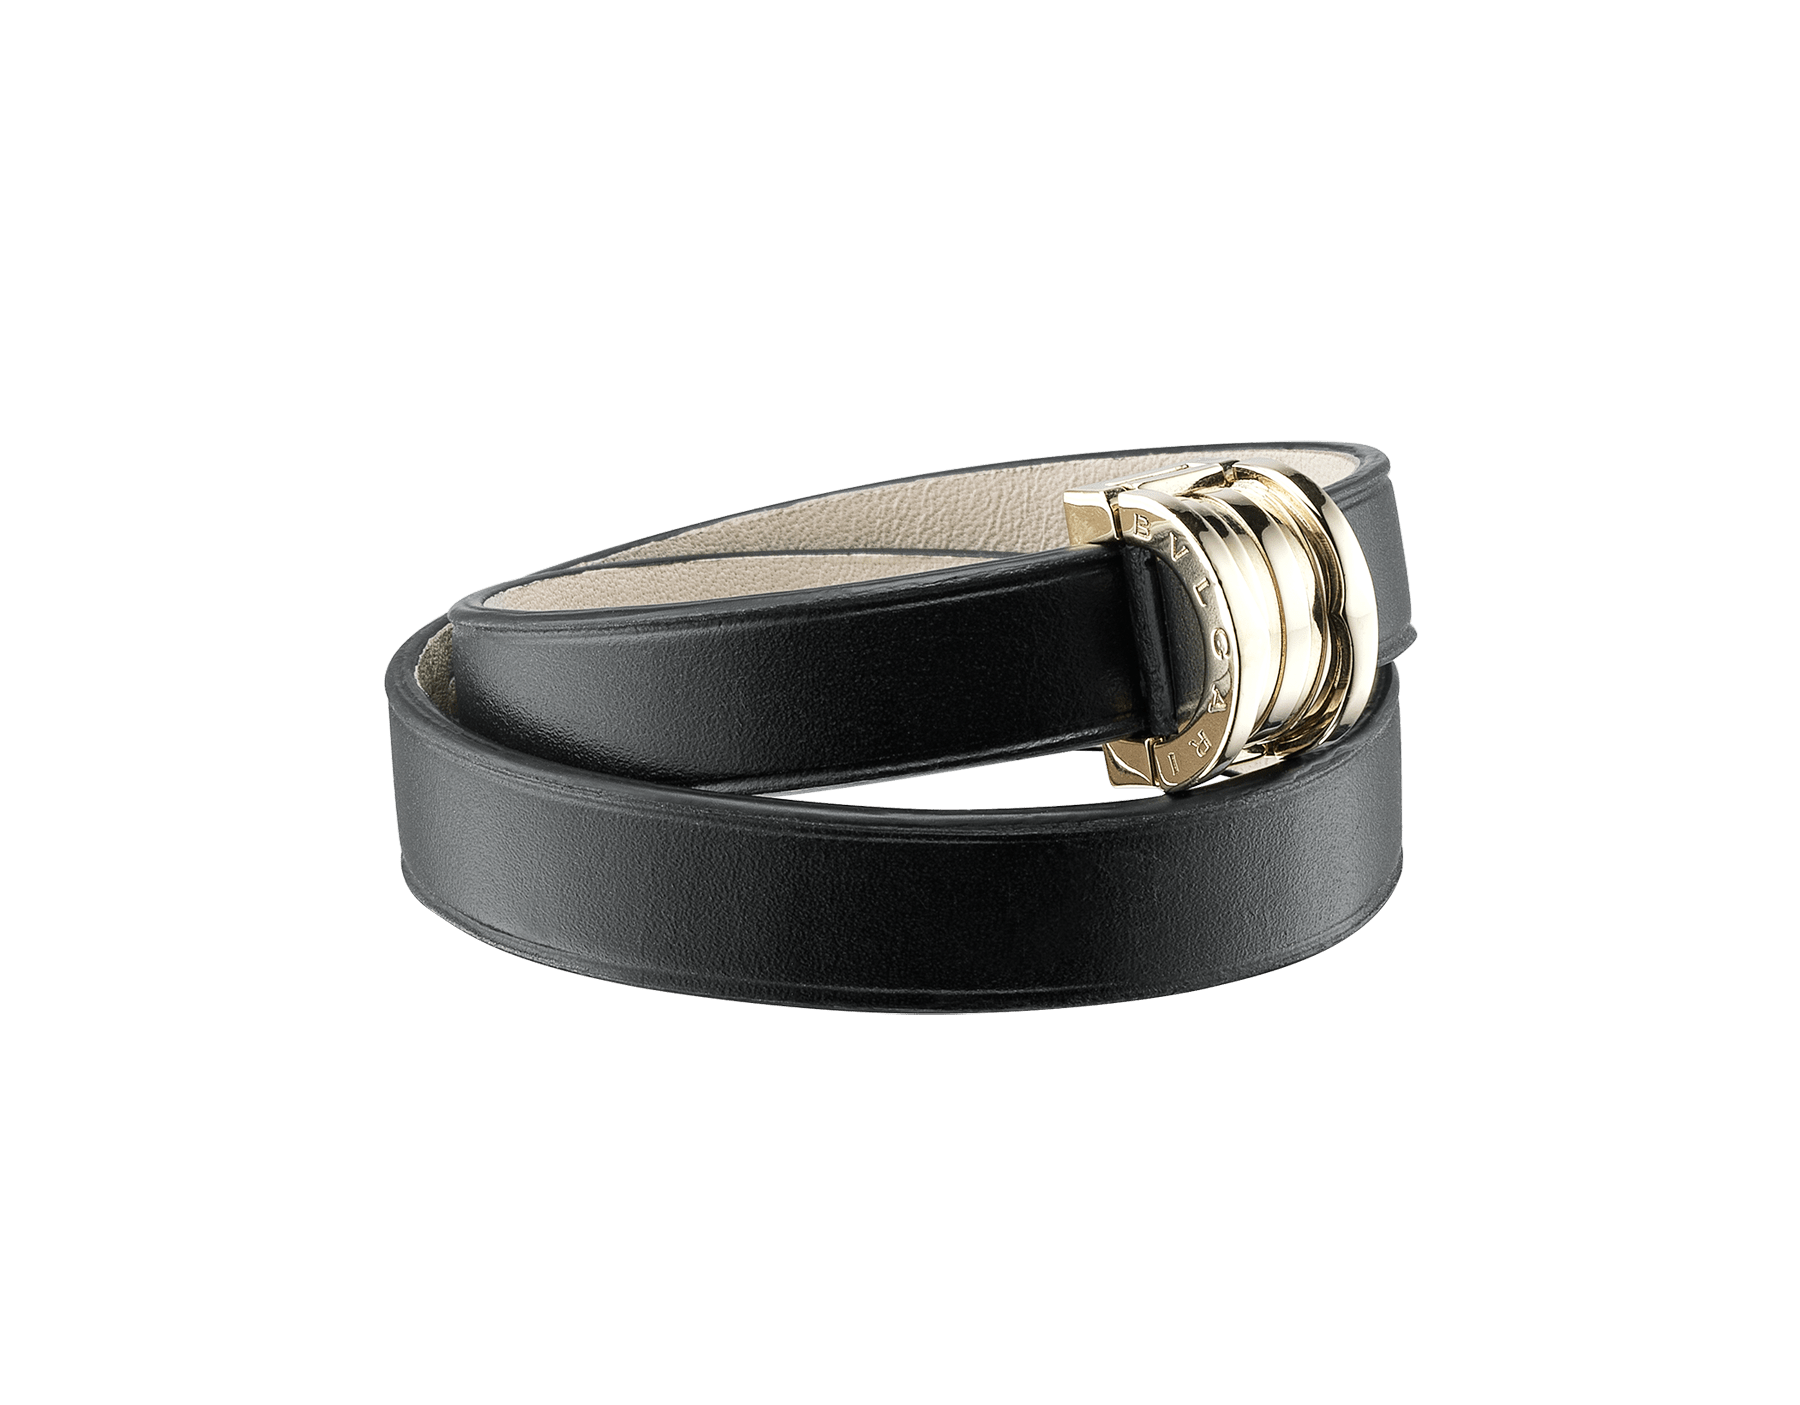 """Bvlgari Bvlgari"" double-coiled bracelet in black calf leather, with B.Zero1 snap closure in light gold plated brass. BZERO1-CL-B image 1"